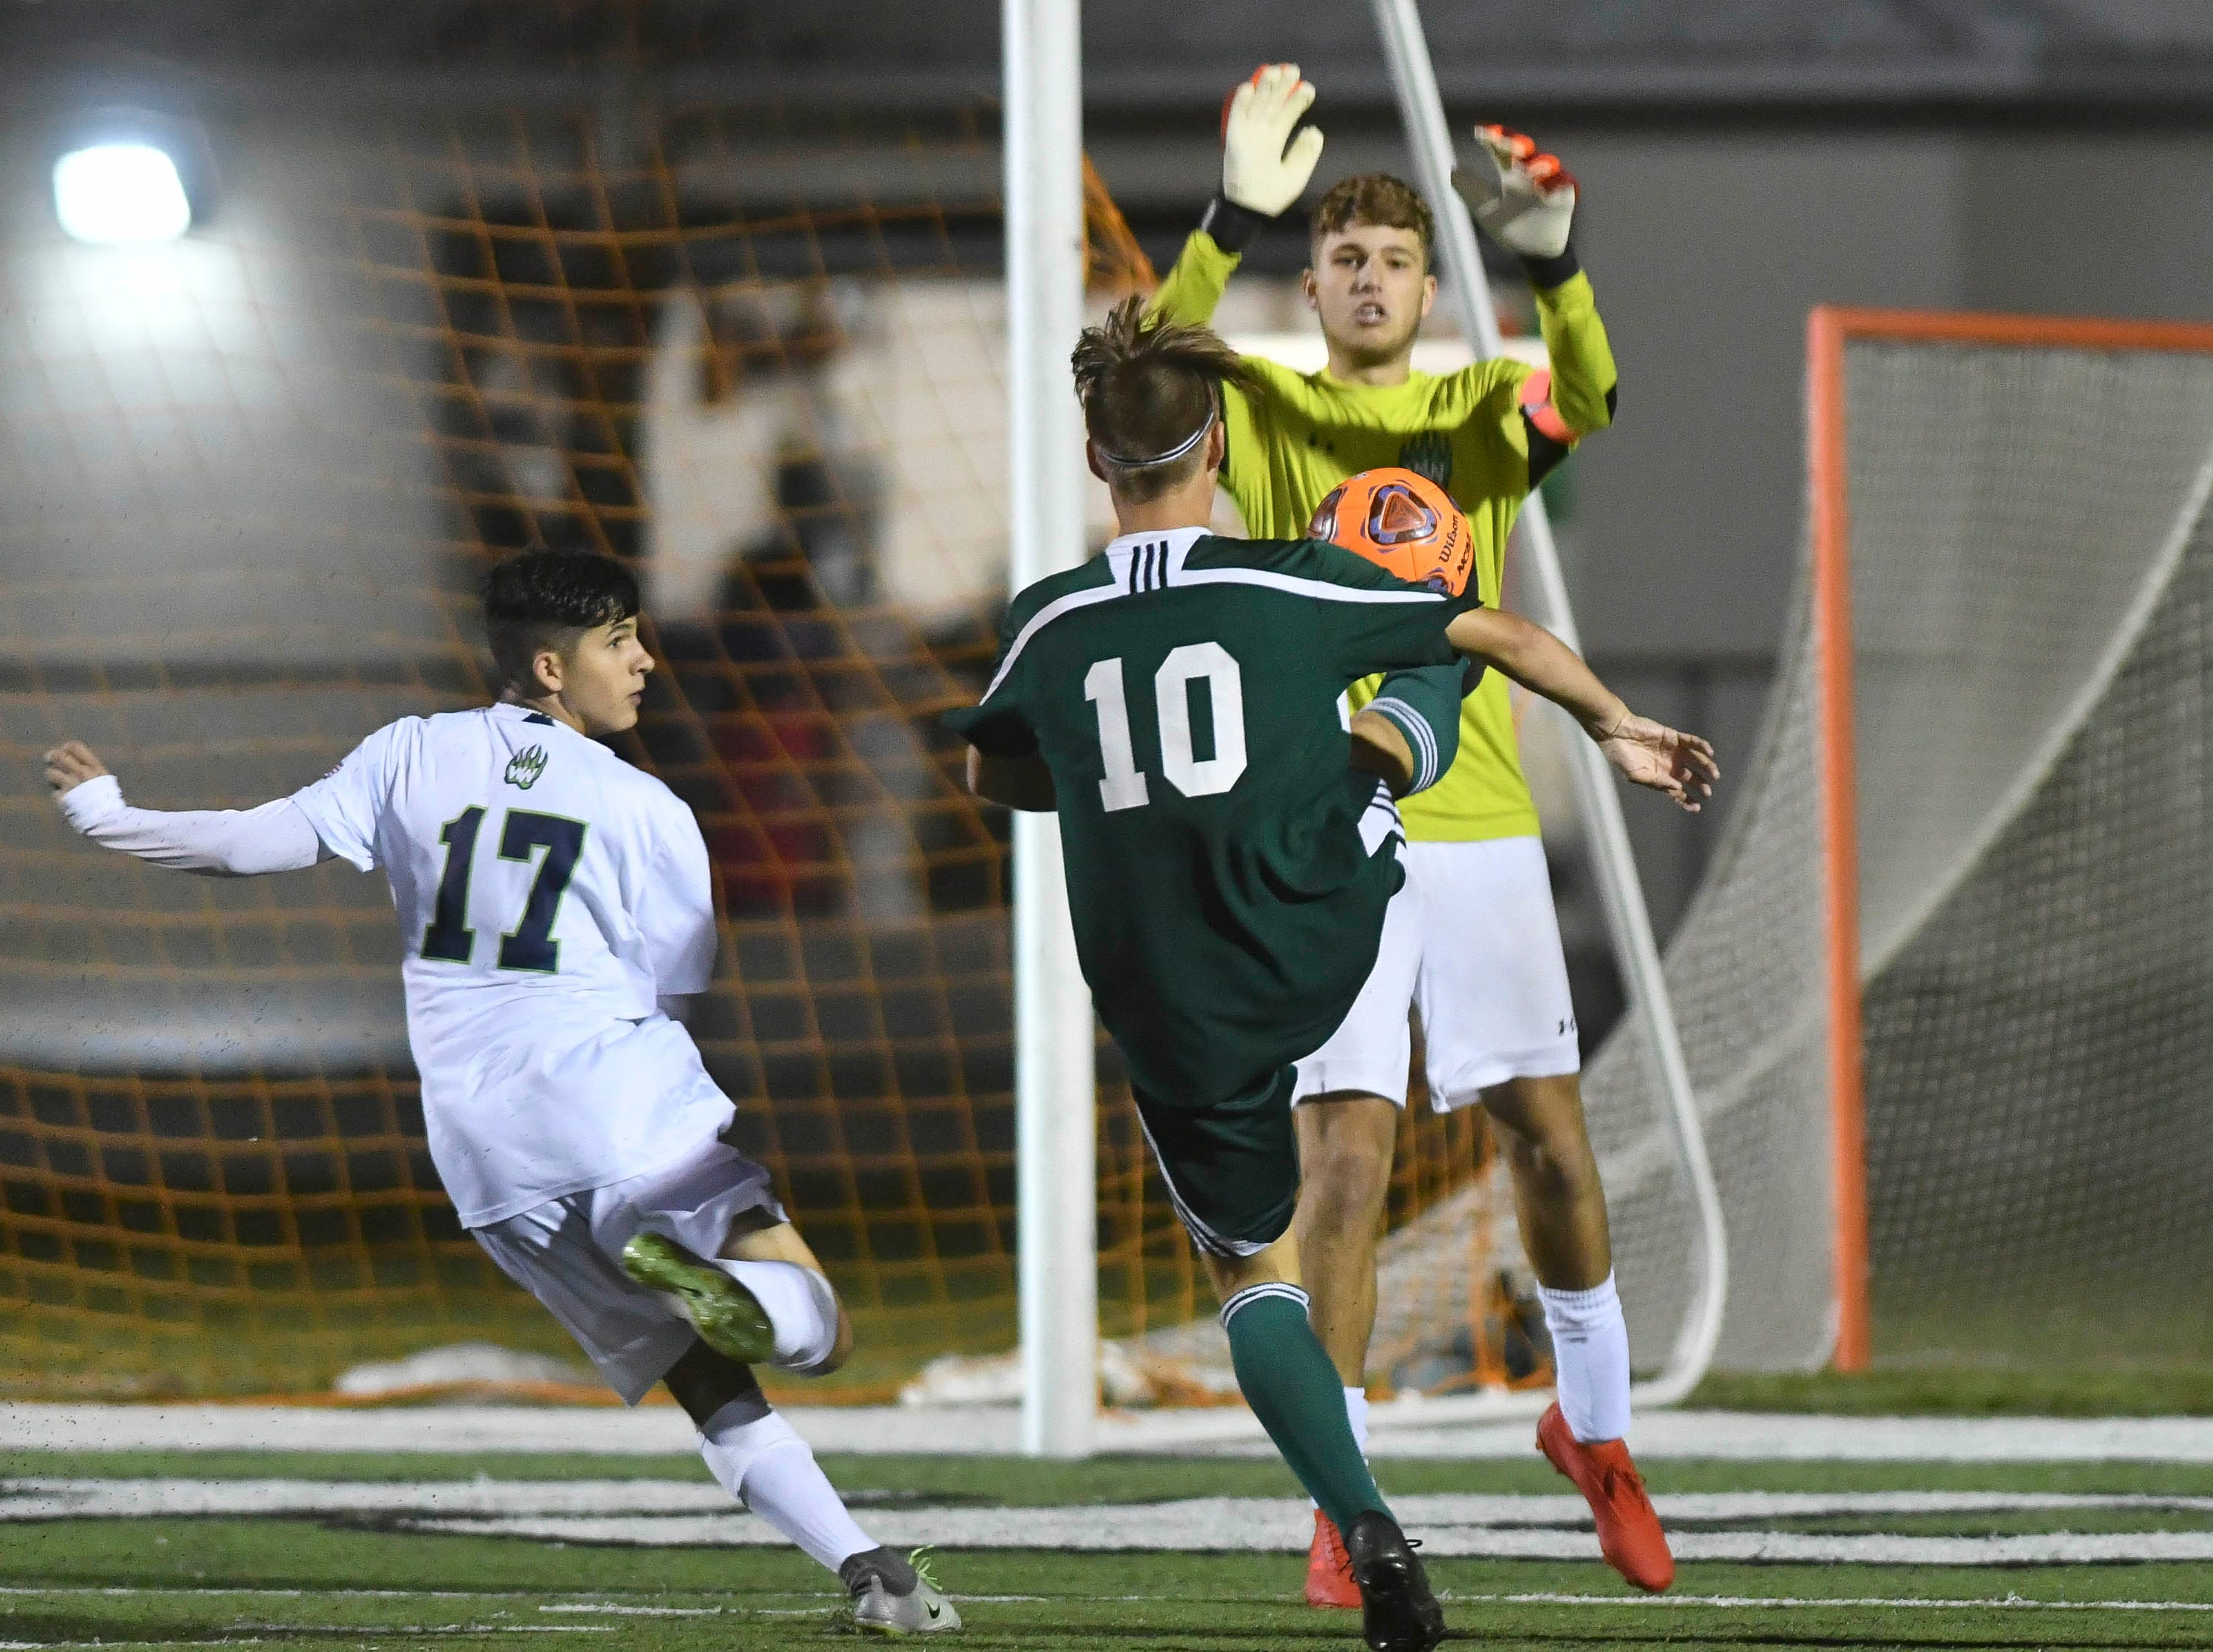 Windermere goalkeeper blocks a shot by Aden O'Hara of Melbourne during Saturday's Class 4A boys soccer regional semifinal.